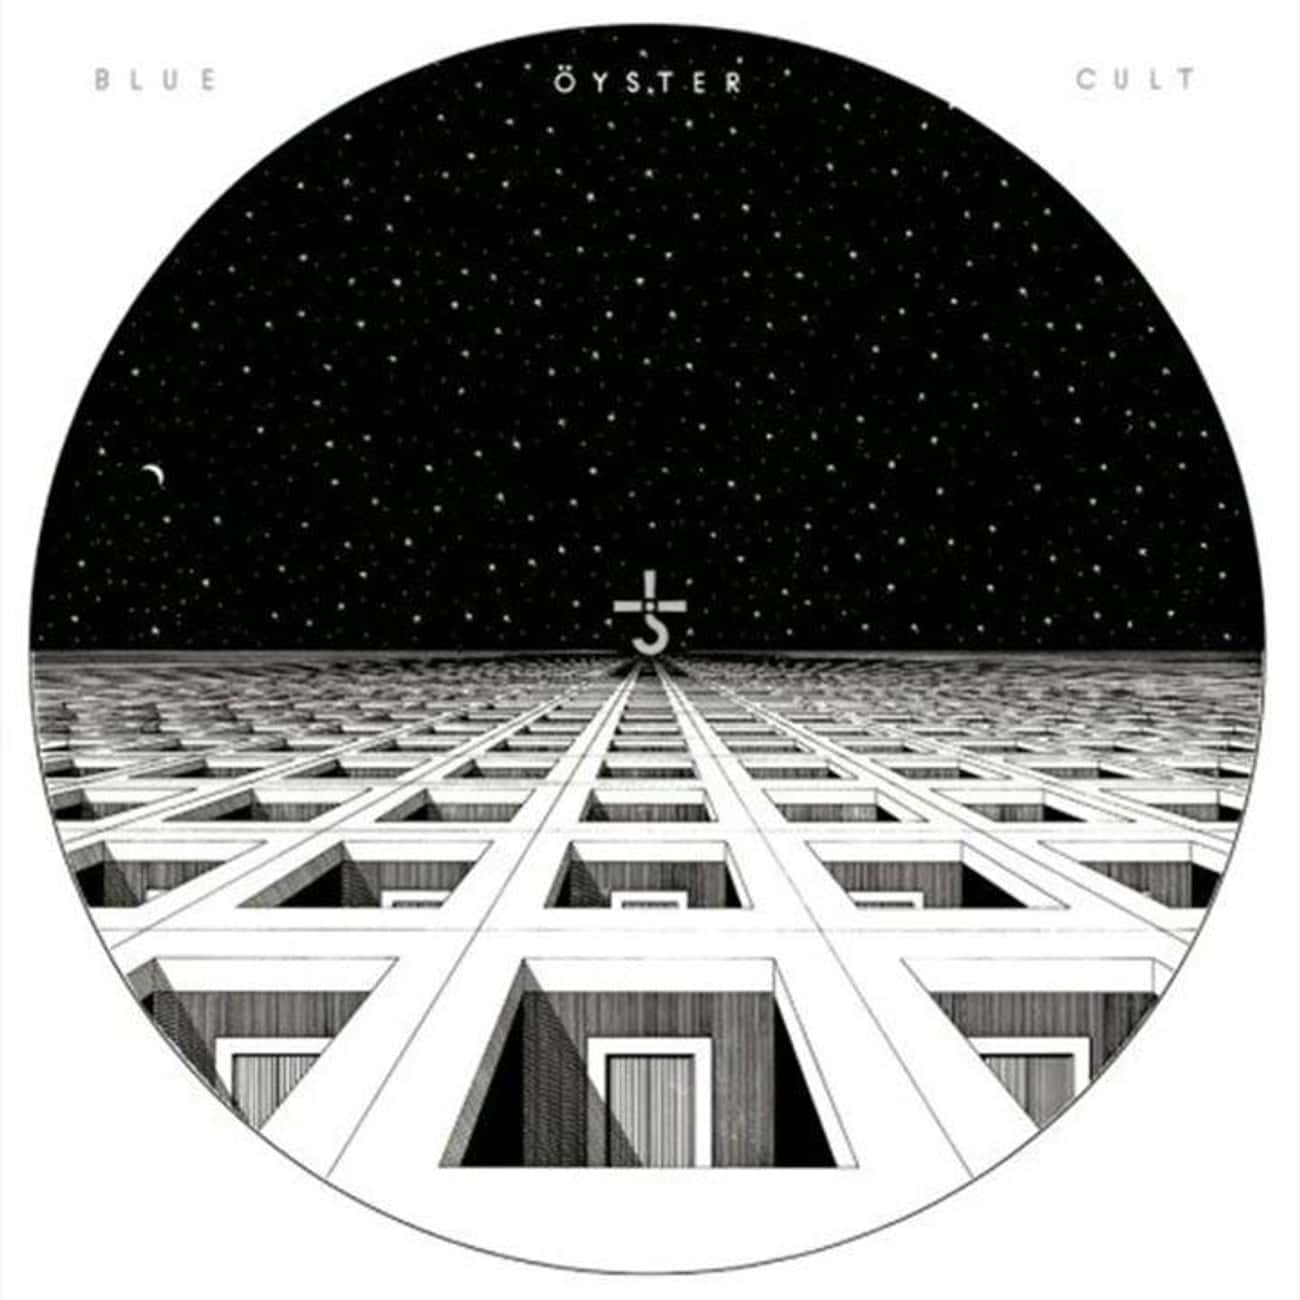 Blue Öyster Cult is listed (or ranked) 4 on the list The Best Blue Öyster Cult Albums, Ranked